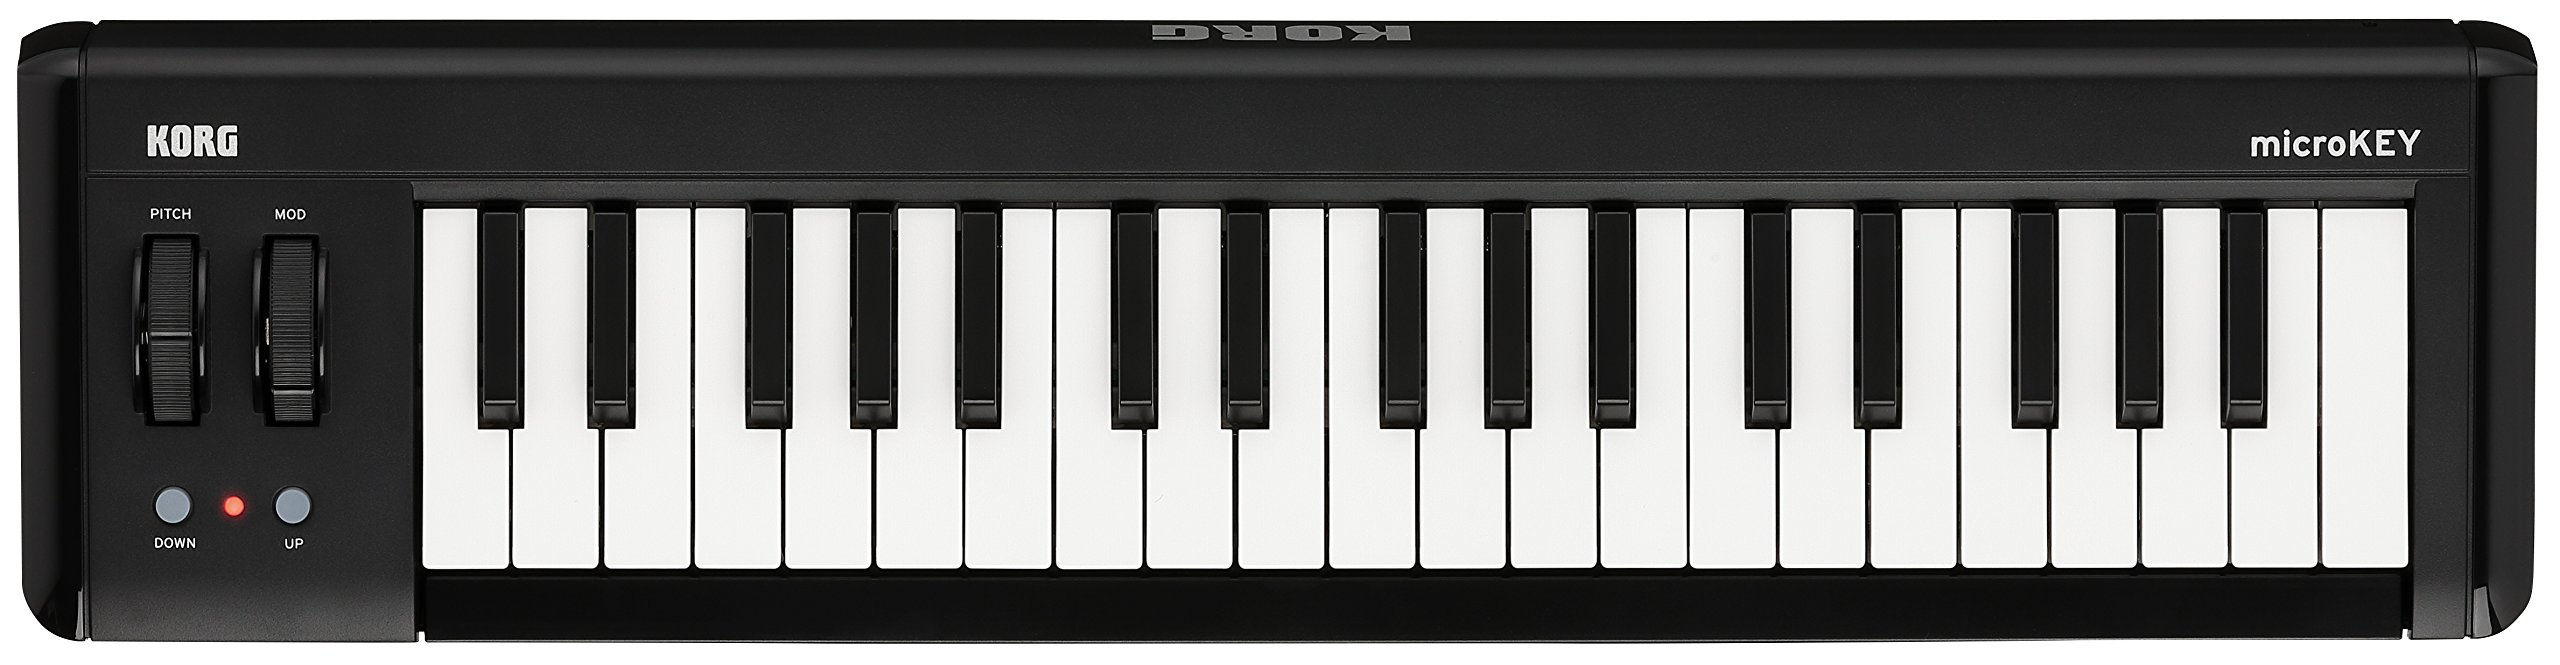 Korg microKEY2-37 - Key iOS-Powerable USB MIDI Controller with Pedal Input by Korg